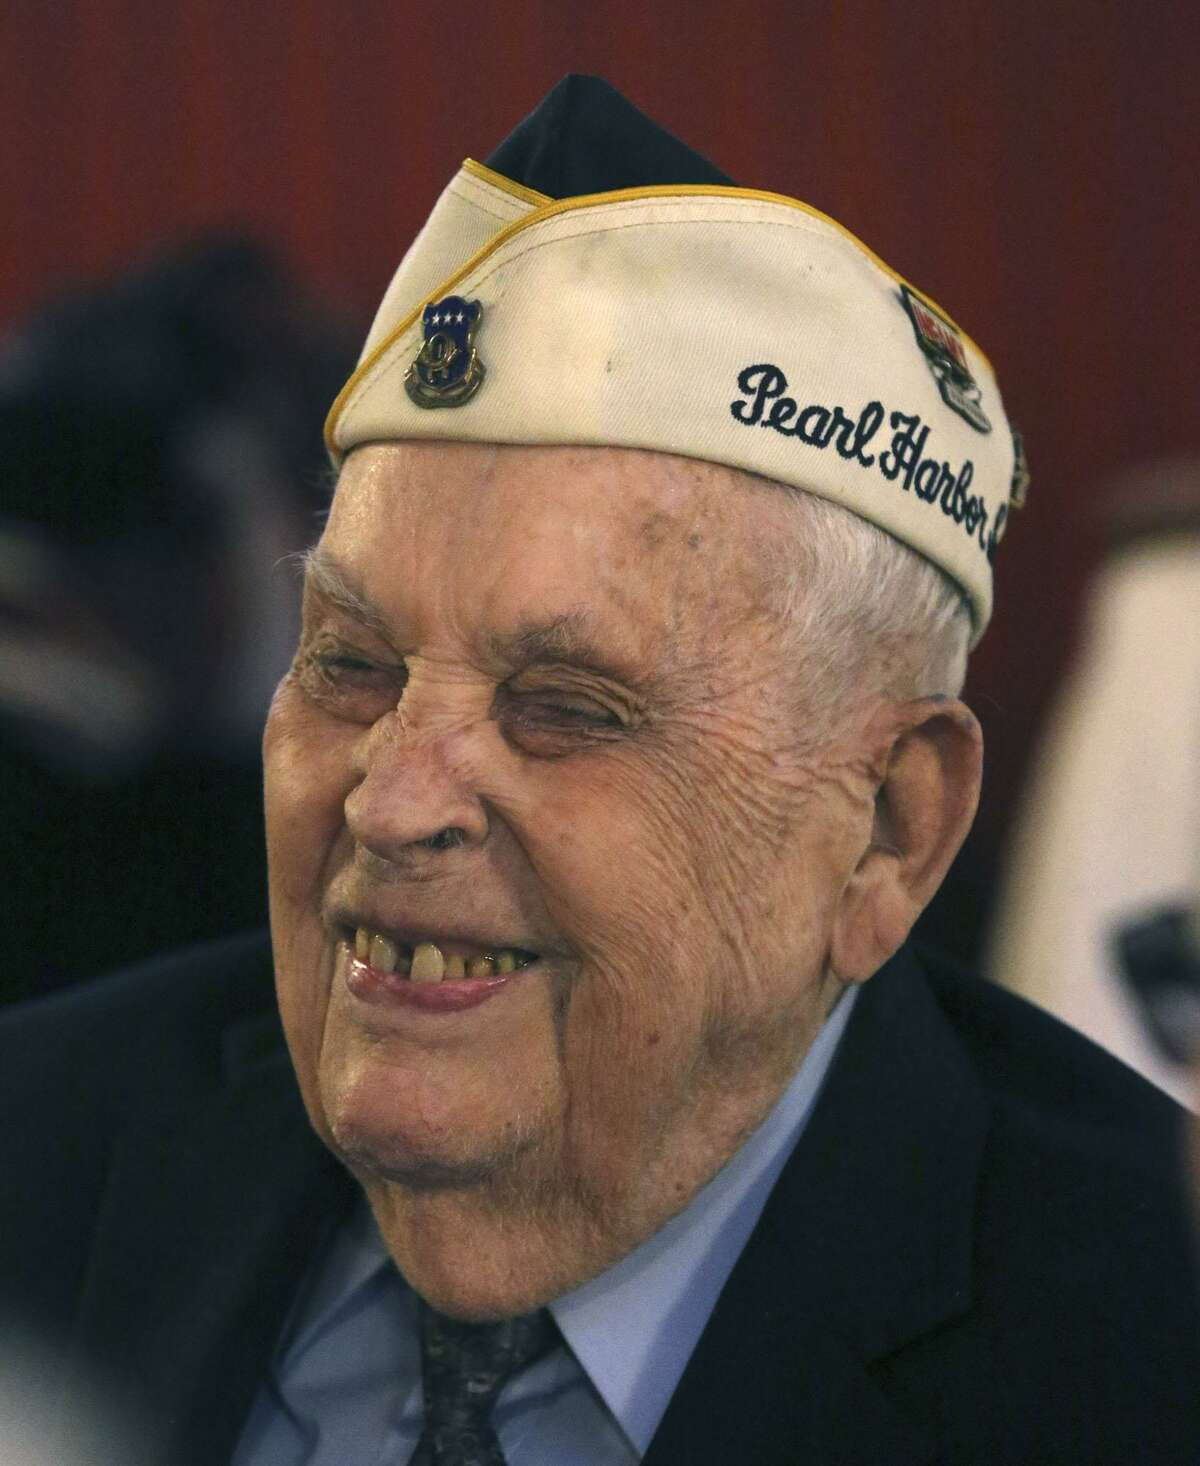 Pearl Harbor survivor Kenneth Platt, then 96, laughed at last year's lunch held in honor of Pearl Harbor survivors at the Barn Door restaurant.